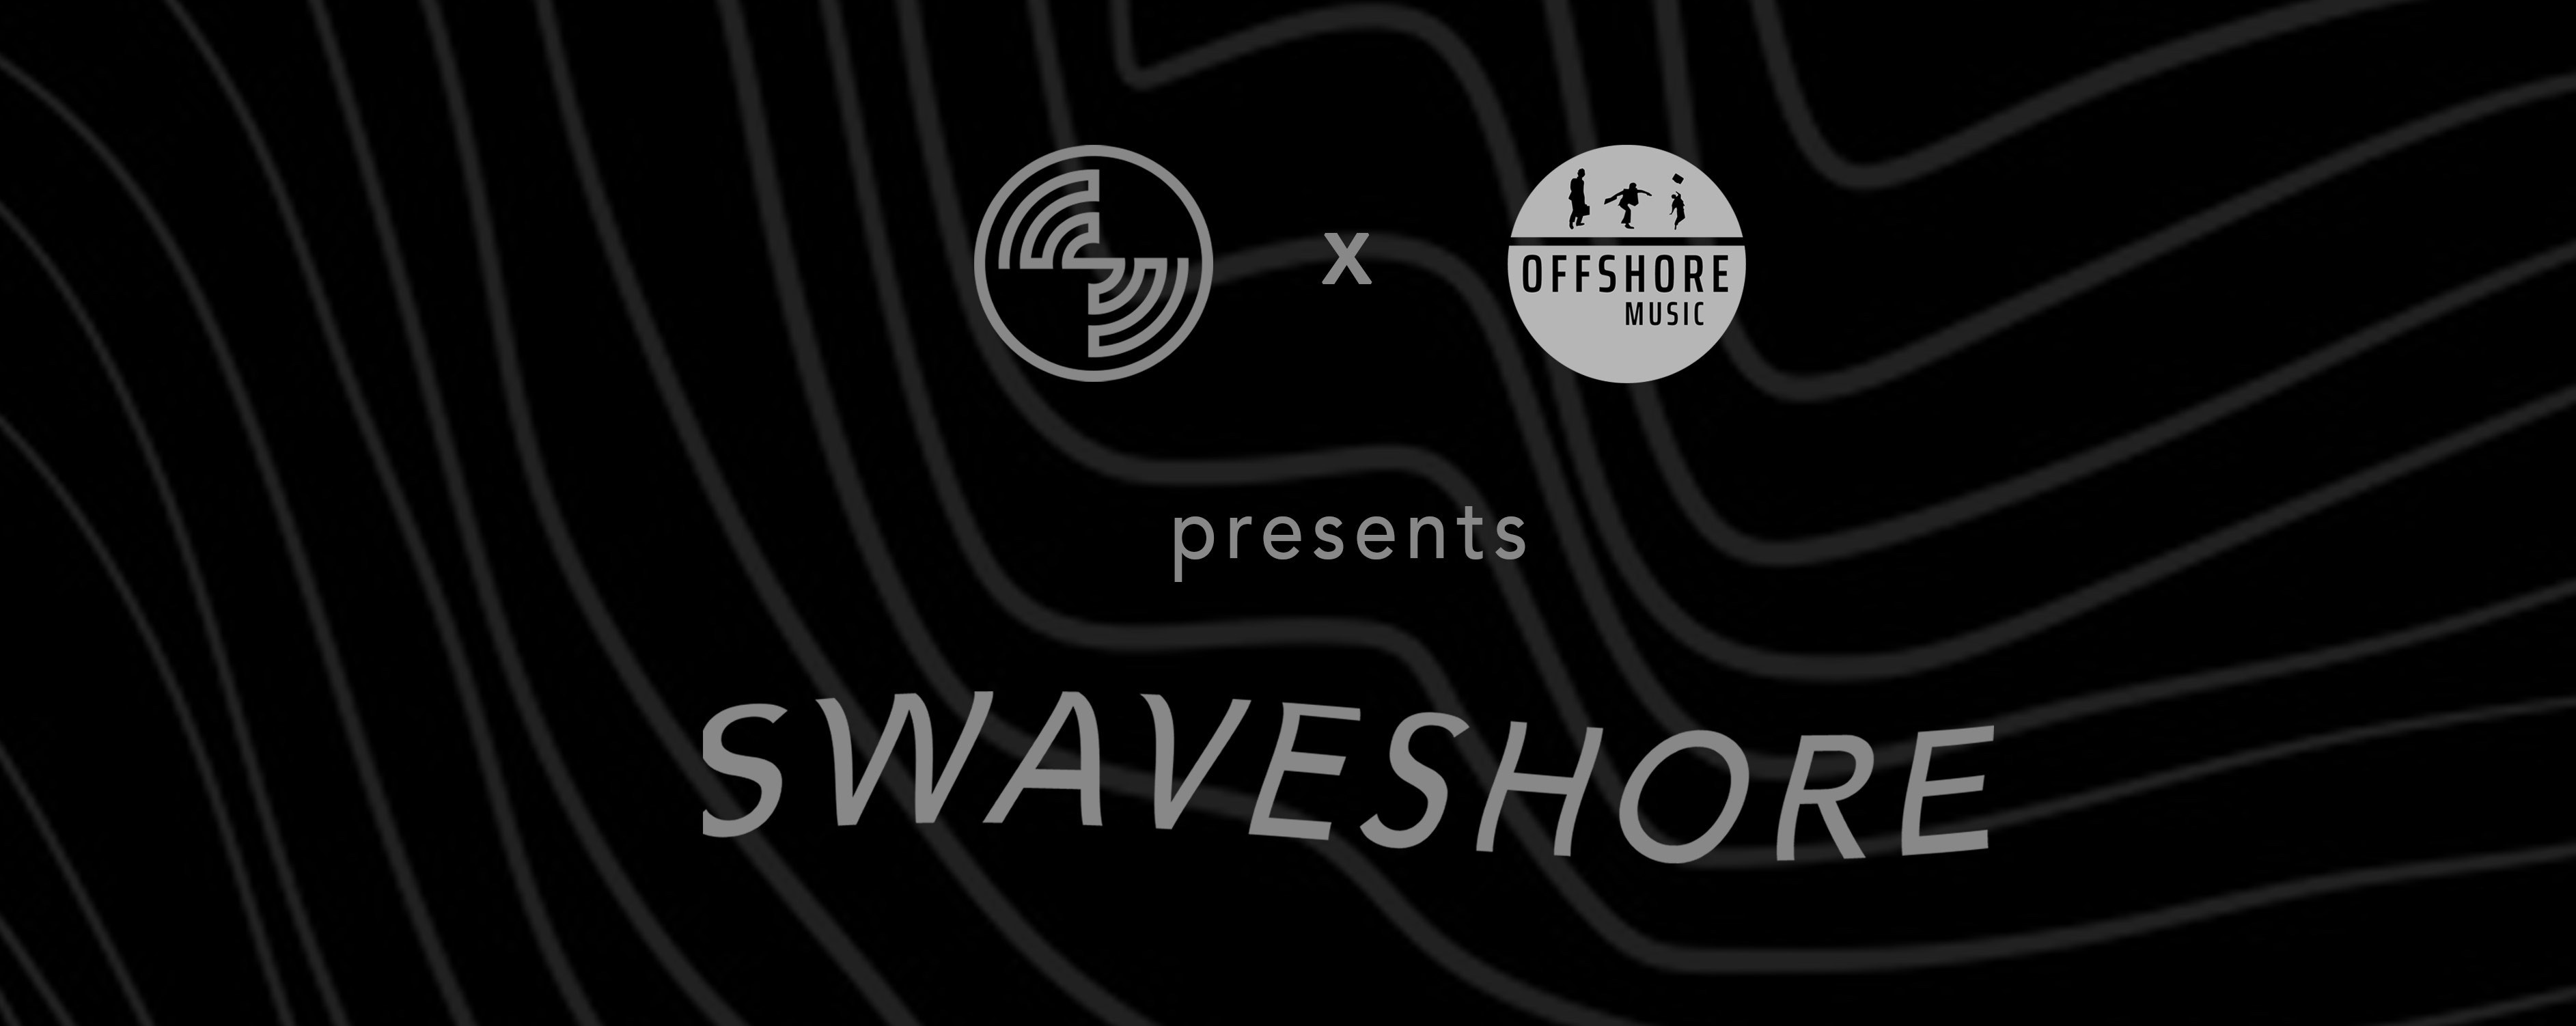 Offshore Music and Swavesound presents: Swaveshore